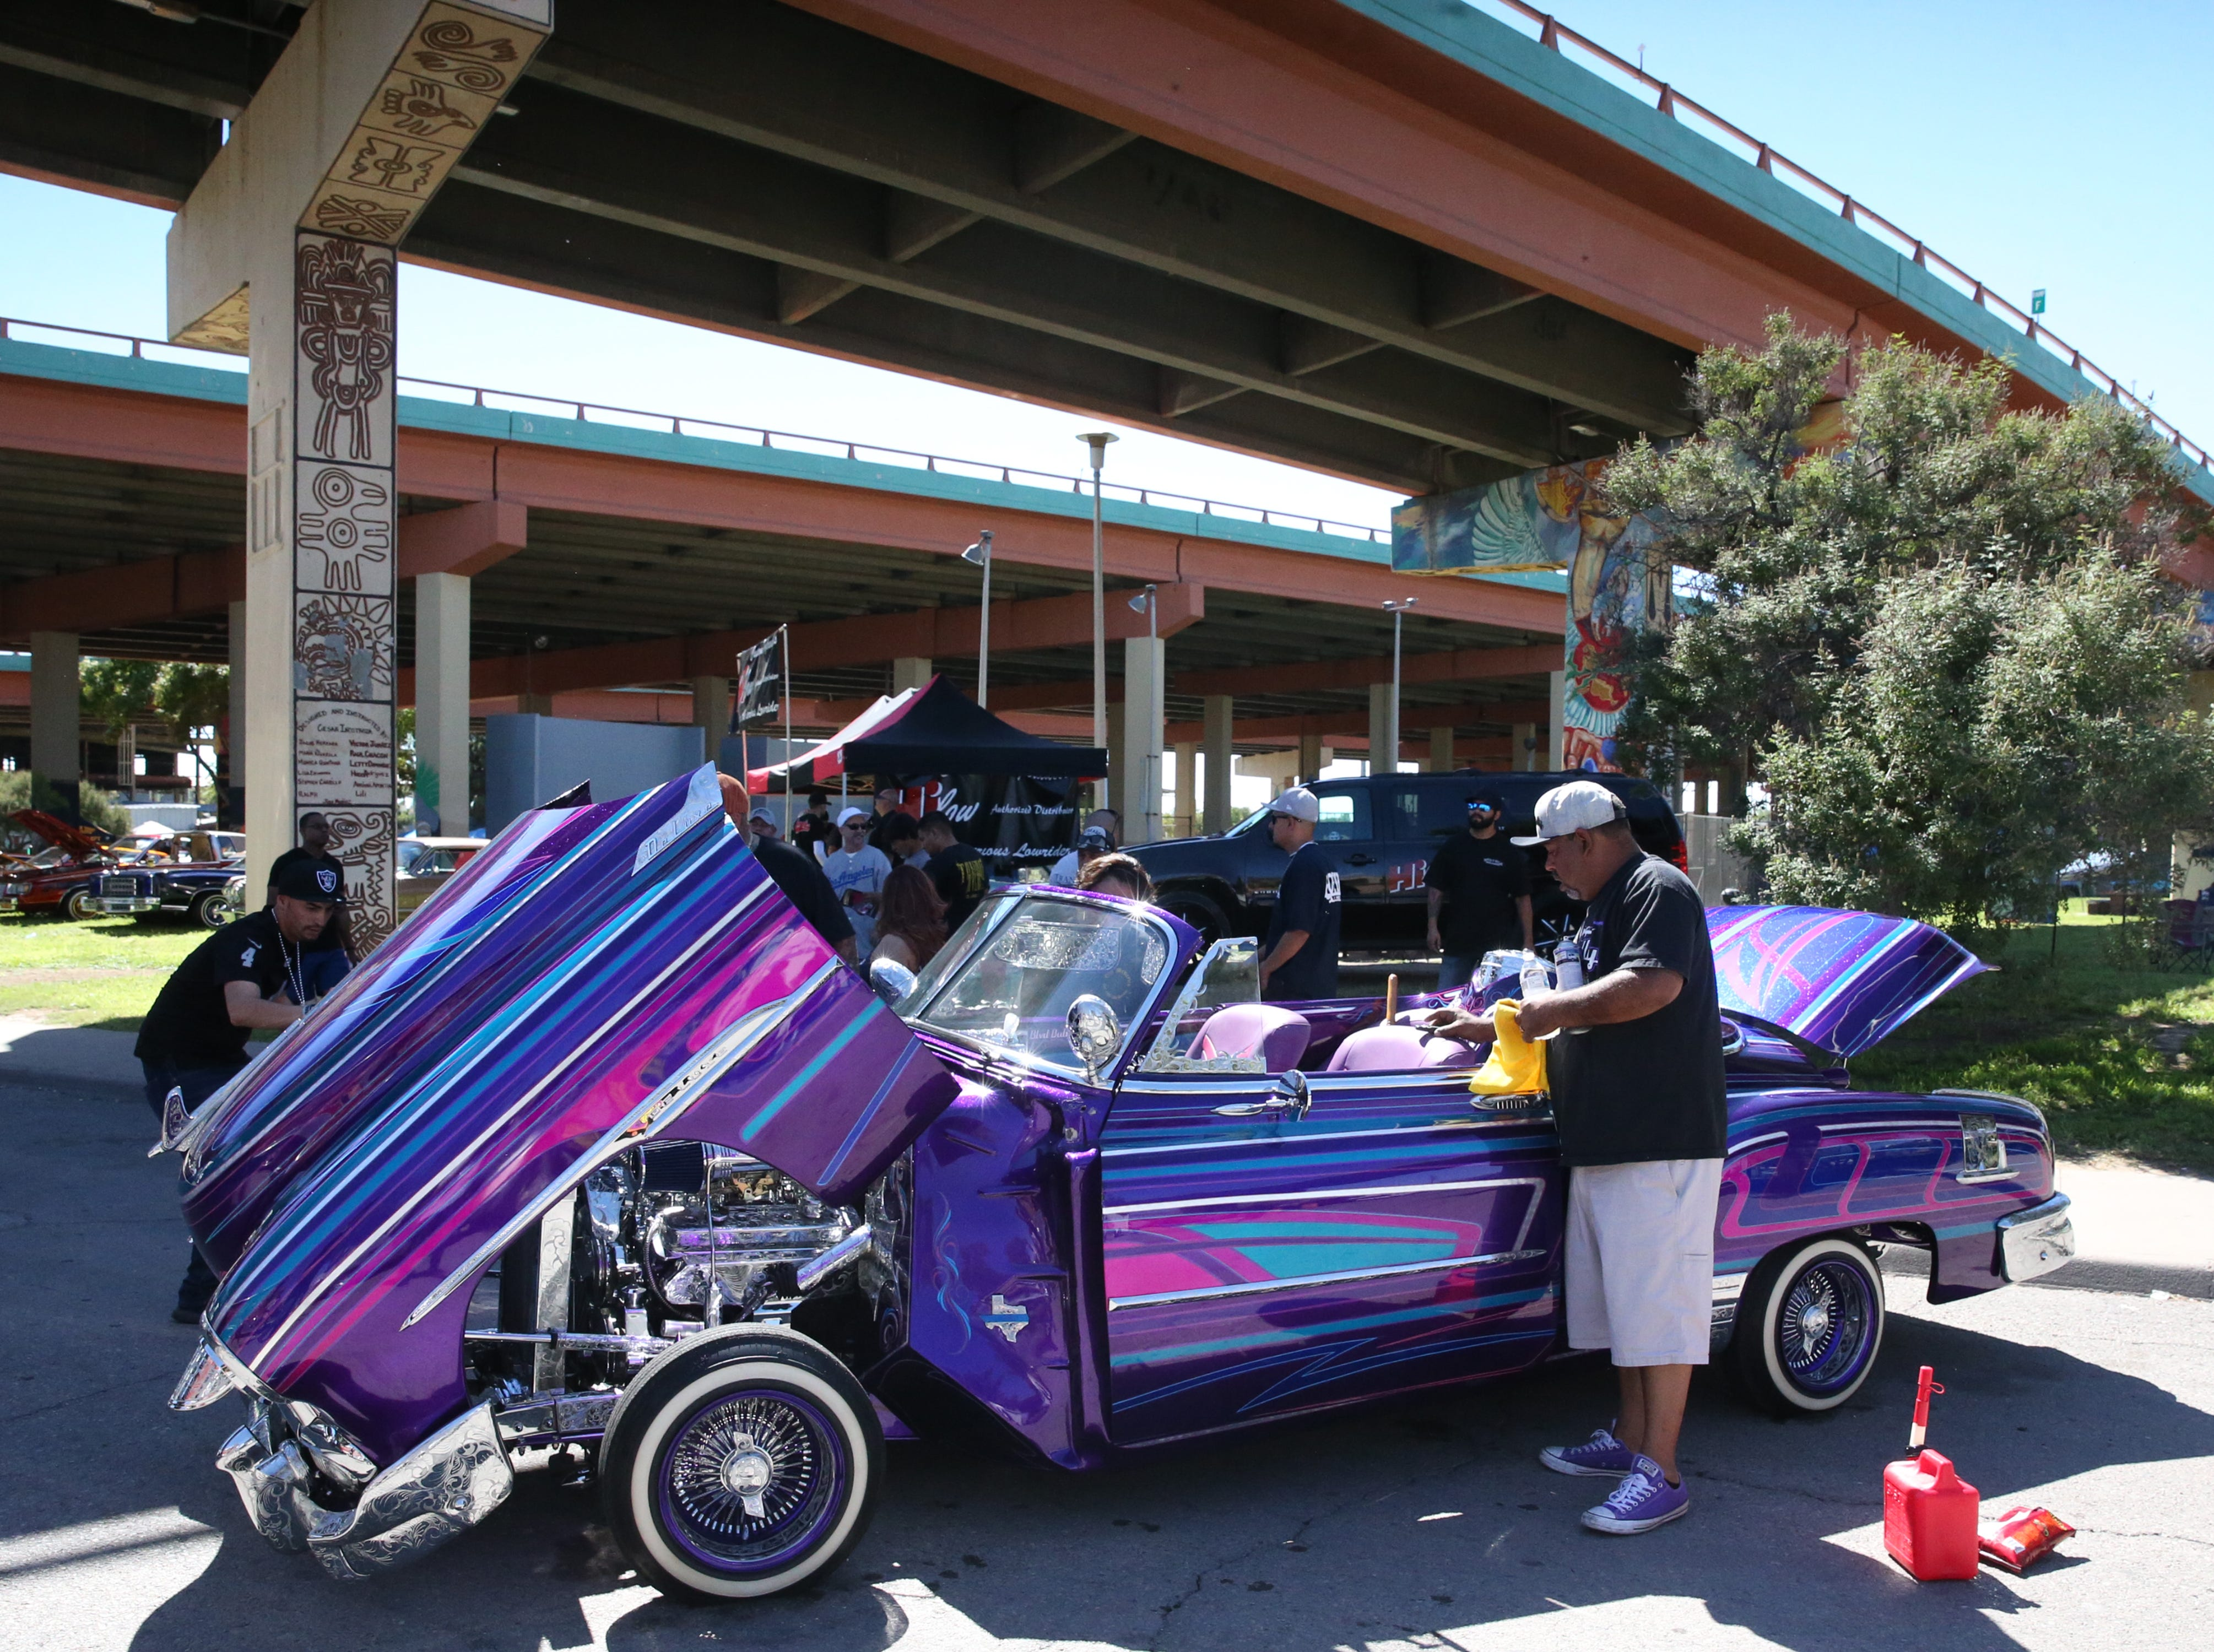 Chris Melendez of Odessa, TX shines up his customized 1951 Chevrolet Deluxe named 'Blvd. Bully' Sunday at Lincoln Park.